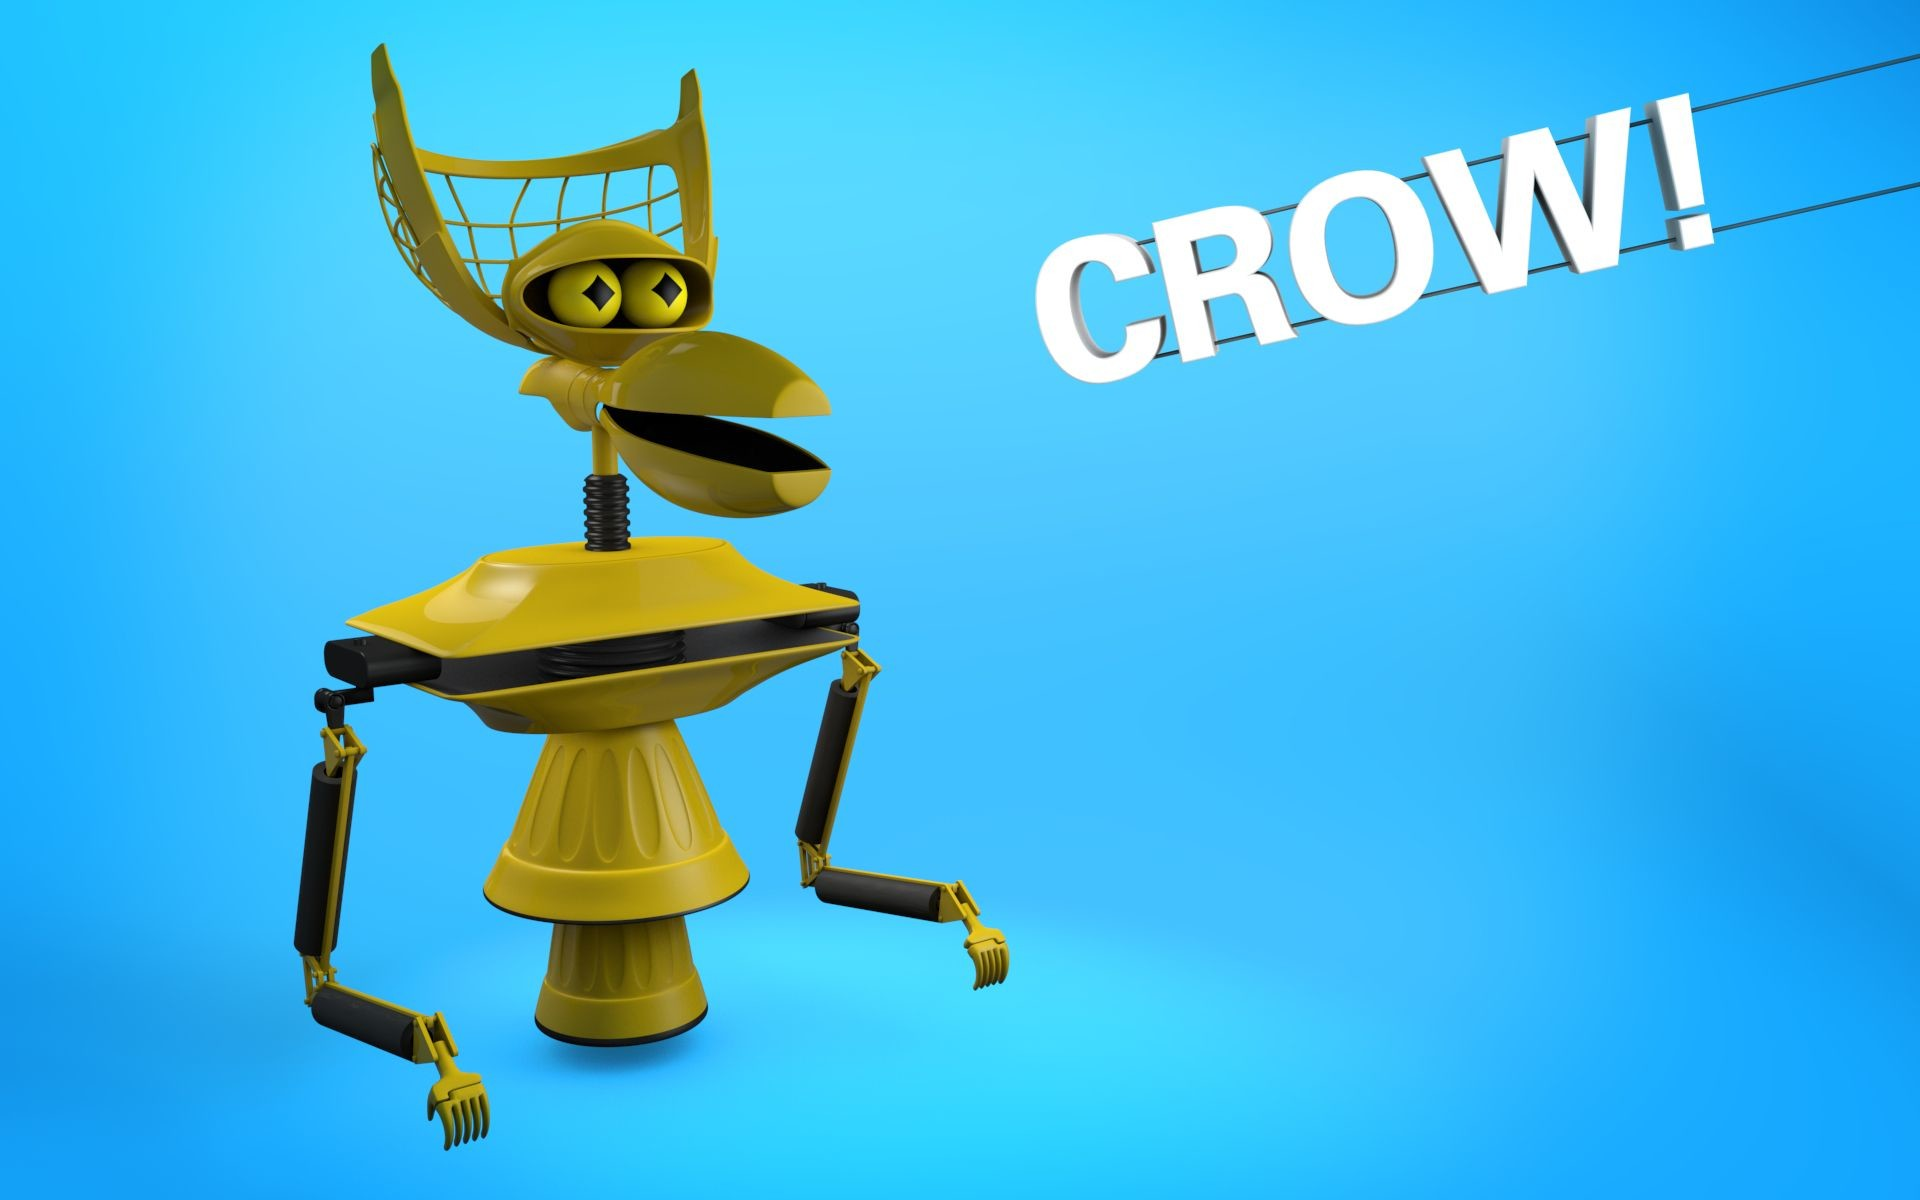 1920x1200 Dig the Tom Servo wallpaper I made? Here's CROW!